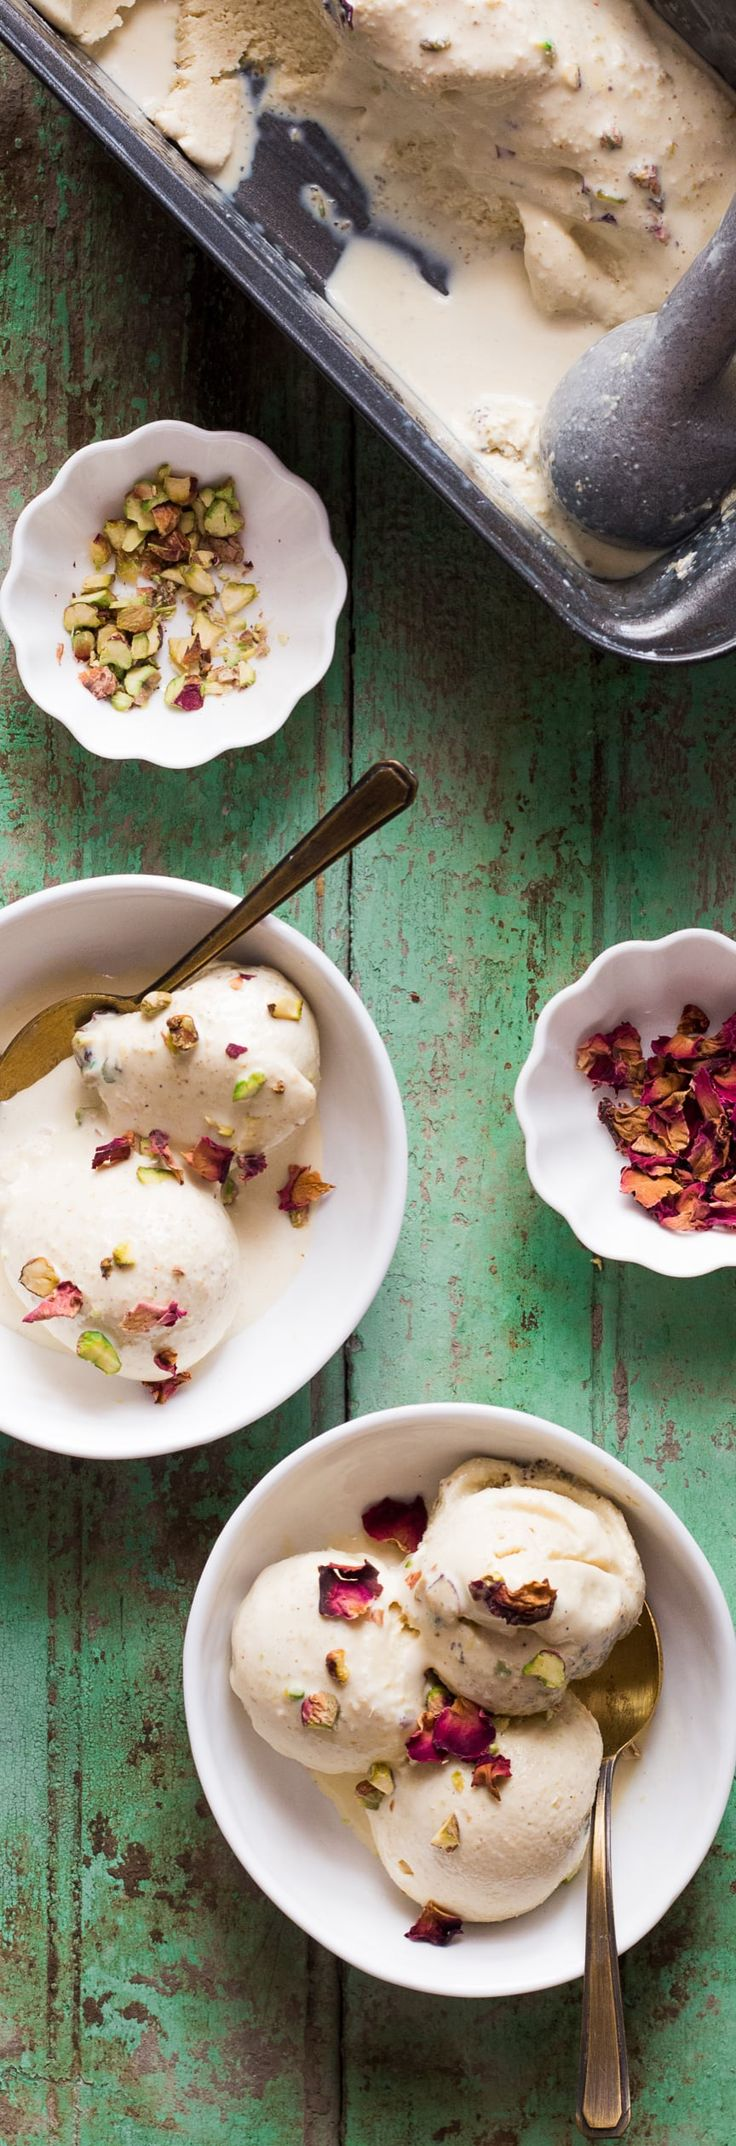 Easy thandai ice cream recipe for the perfect holi party! No churn, eggless and does not need an ice cream maker. Includes recipe to make thandai powder at home too.